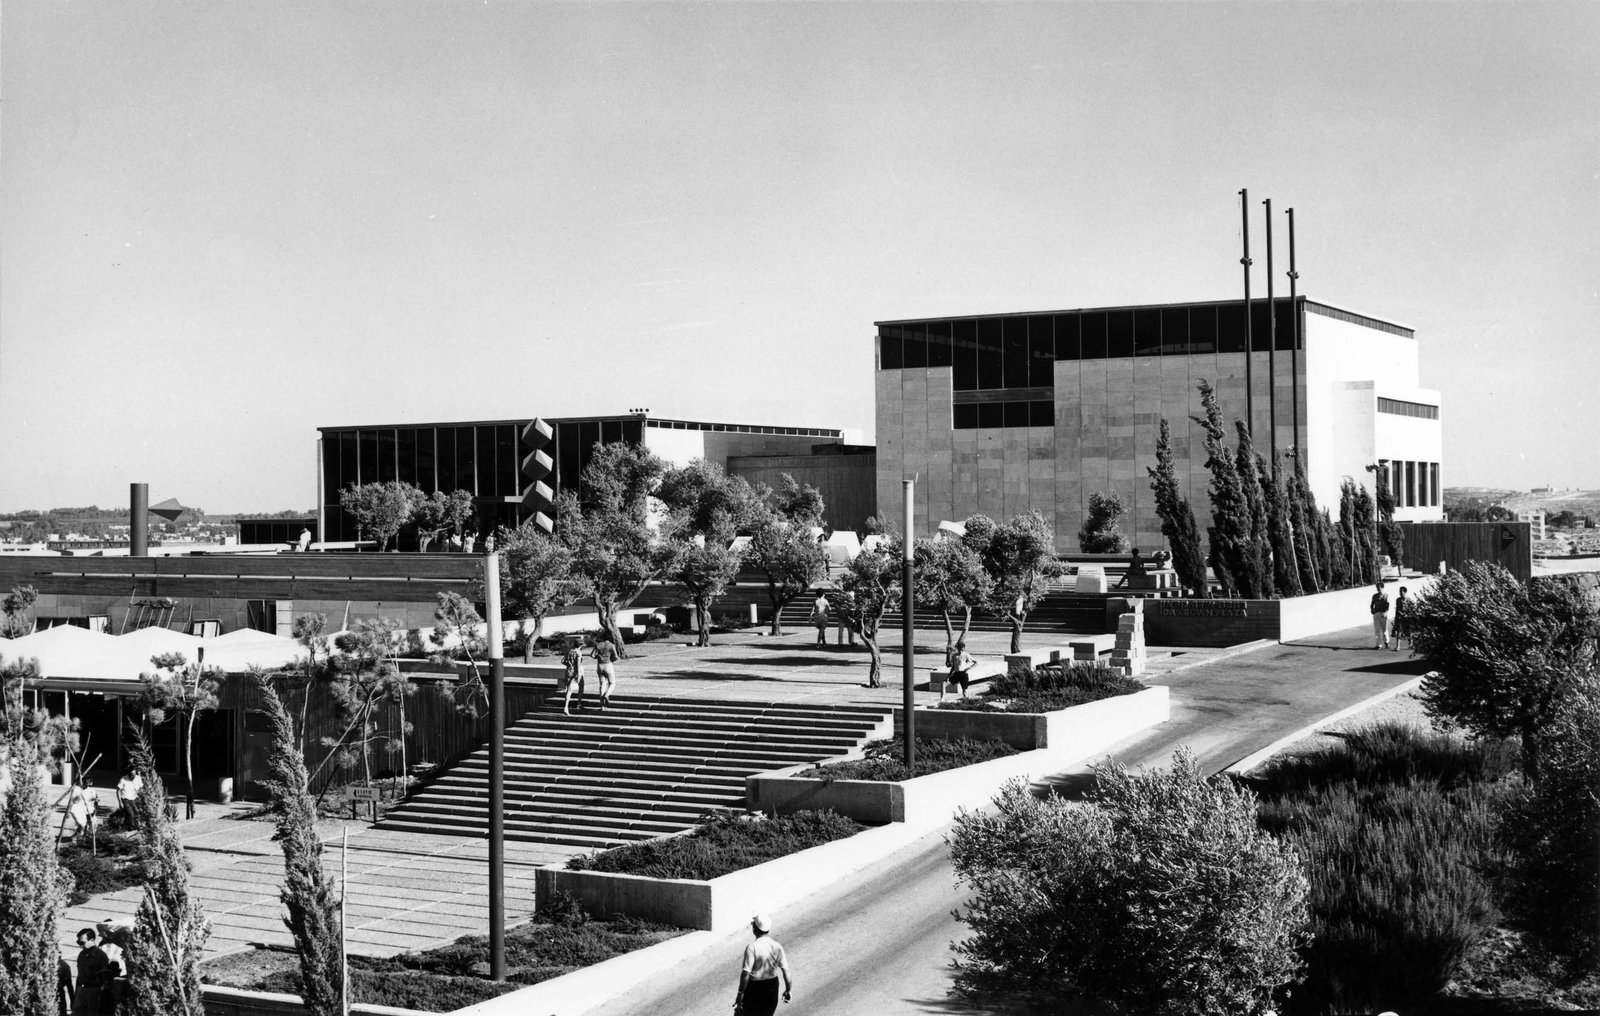 """""""In 1965, Israel was barely 17 years old,"""" Snyder says. """"Teddy Kollek had barely become Jerusalem's mayor, and was determined to see it become a modern western capital like the great cultural capitals of Europe, and opening the Israel Museum that year was part of his vision."""""""